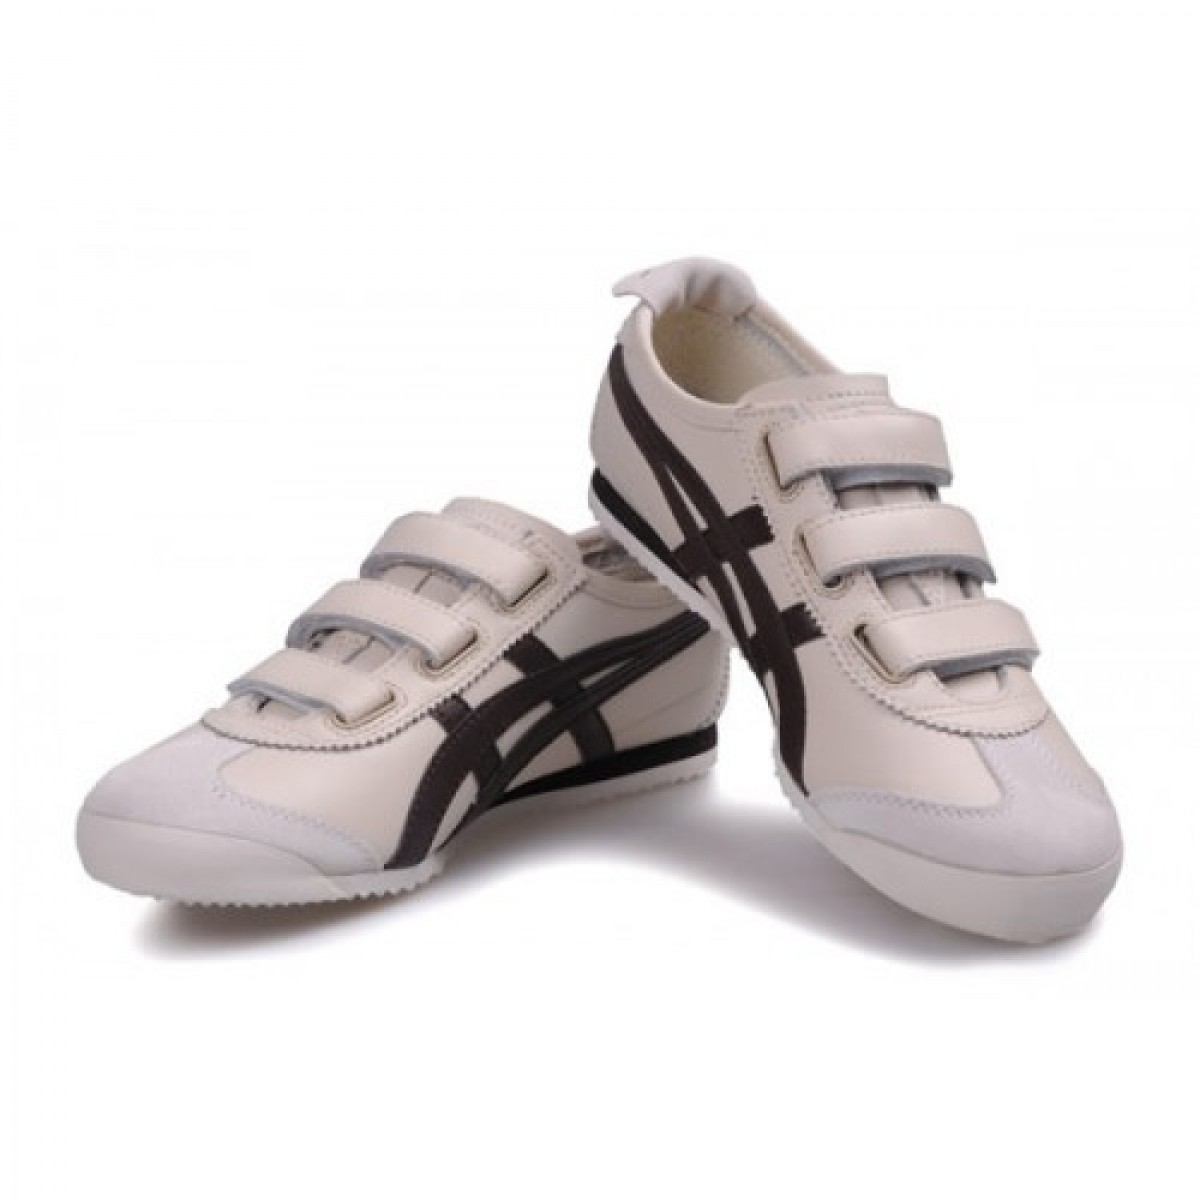 PV0949 Soldes Asics Onitsuka Tiger Mexico 66 Baja Chaussures Chocolat Beige 68011139 Pas Cher